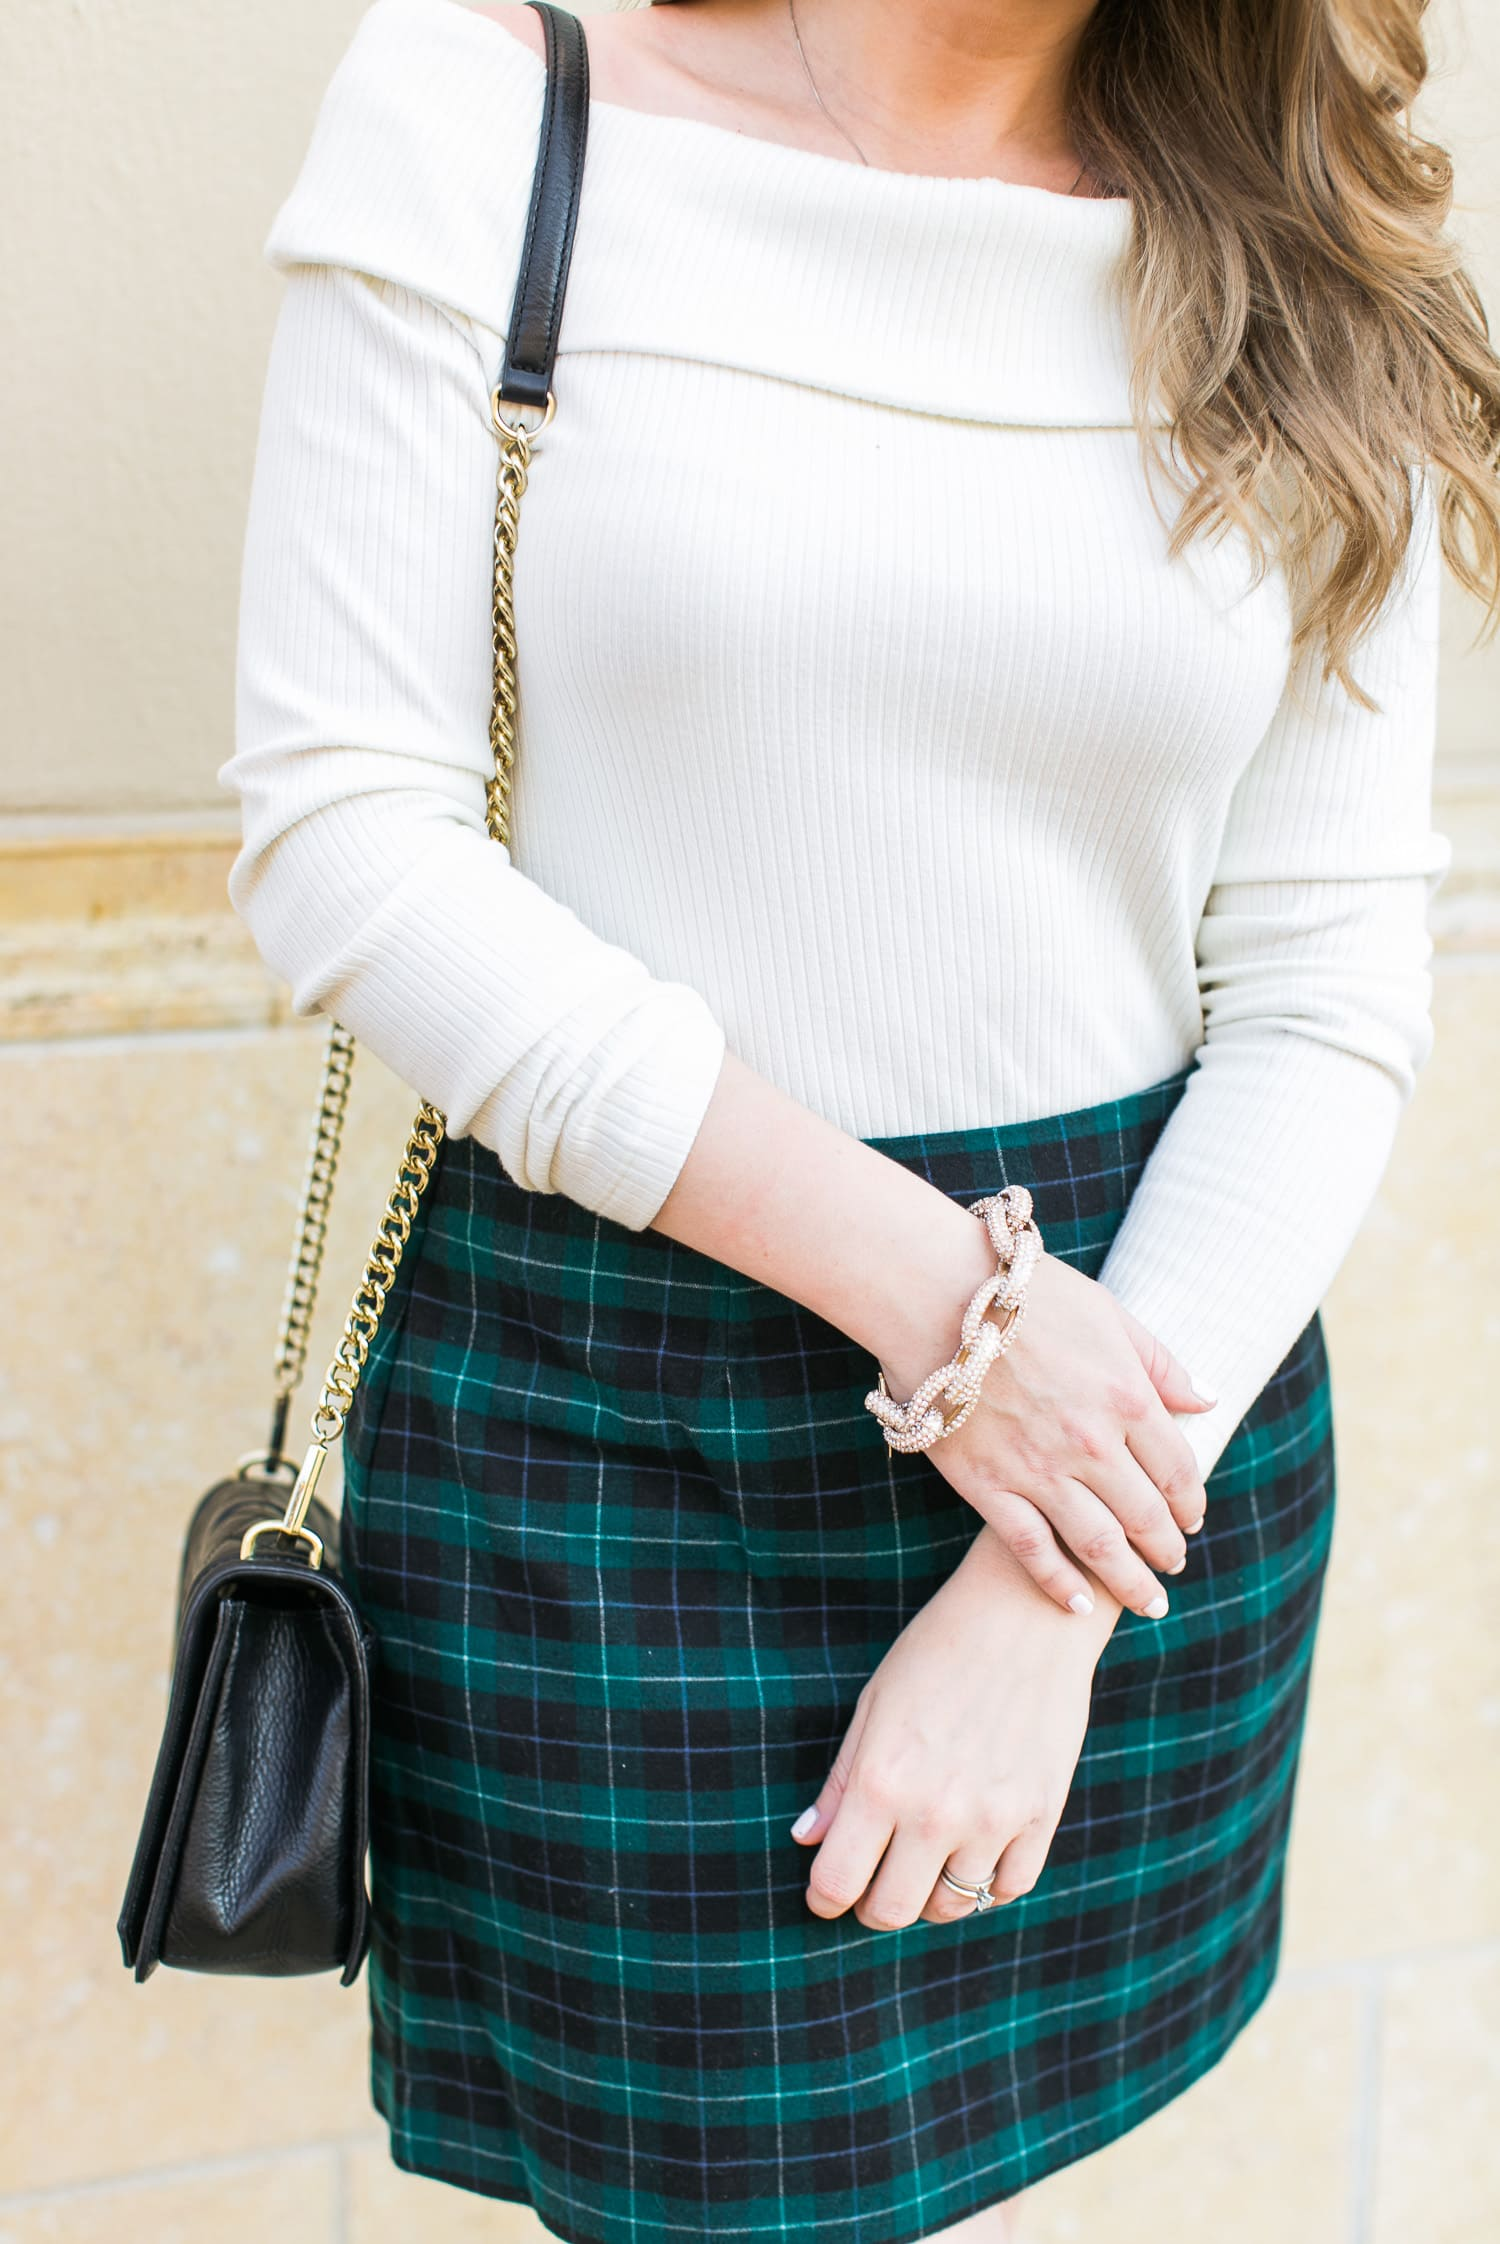 holiday-party-outfit-idea-plaid-skirt-pave-link-bracelet-rebecca-minkoff-purse-017